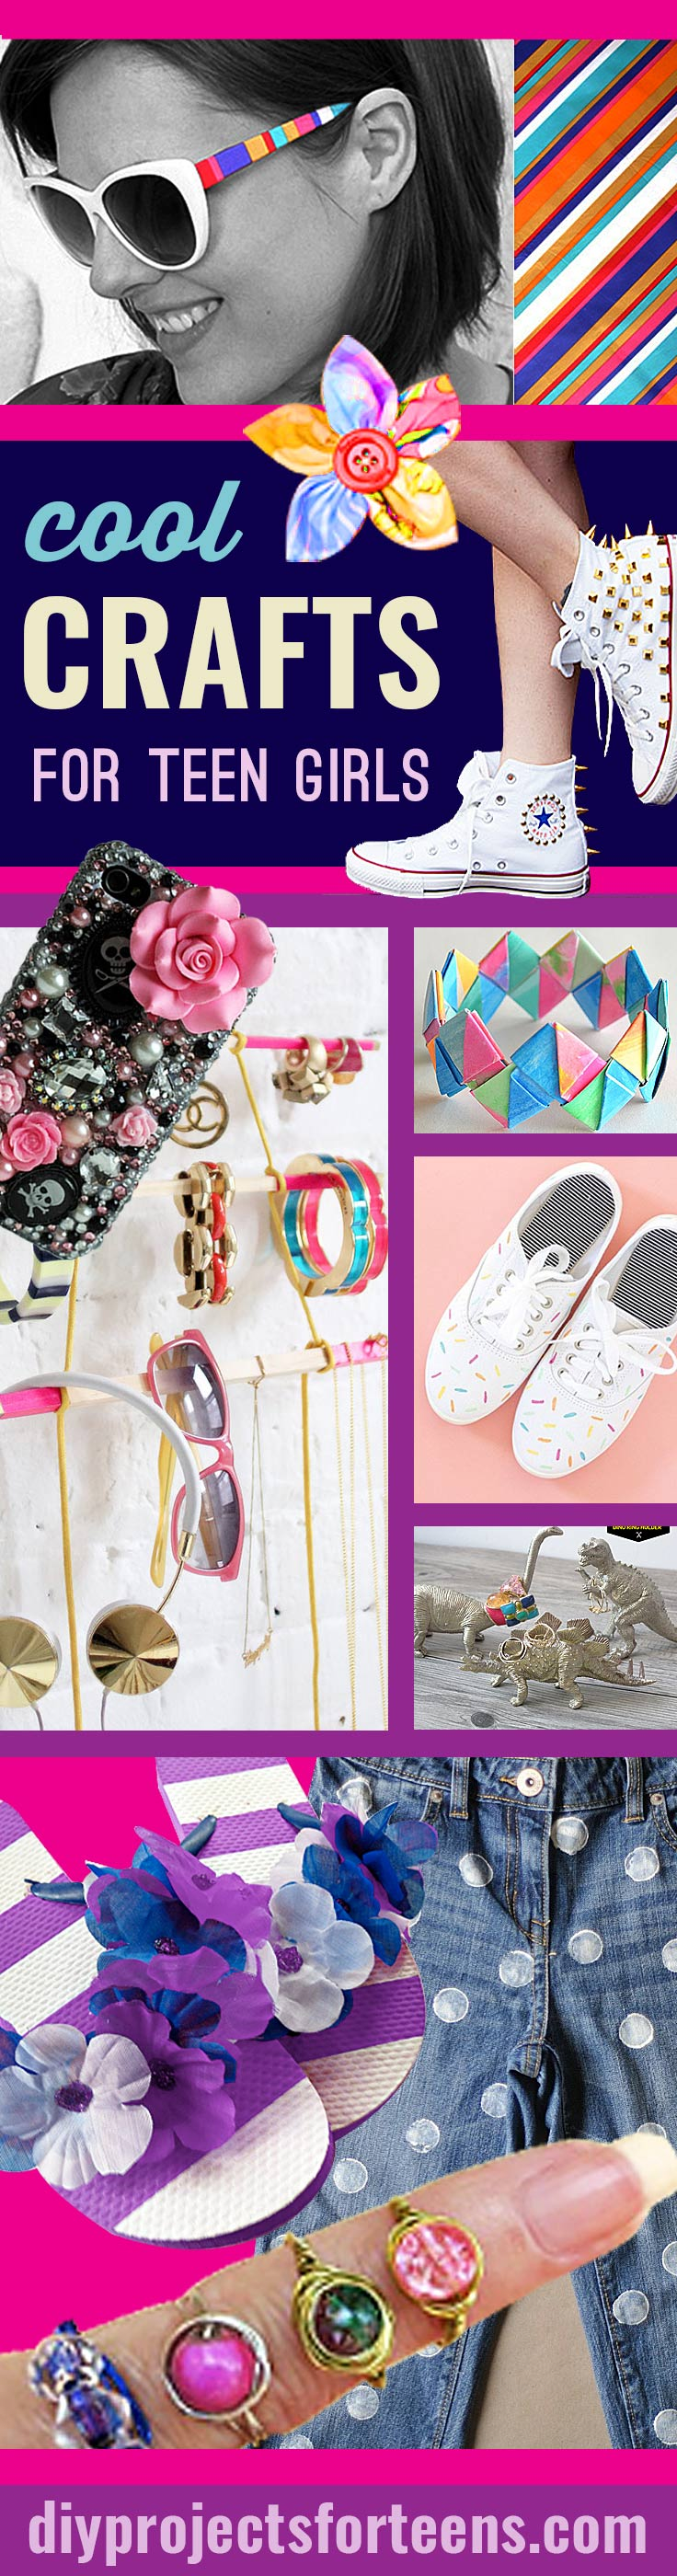 Cool Crafts For Teen Girls - Fun and Easy DIY Projects for the Creative Teen, Tween and Teenager. Girls love these crafty ideas for decor, gifts, fashion, jewelry and room decor. #teencrafts #coolcrafts #craftsforteens #cooldiy #crafts